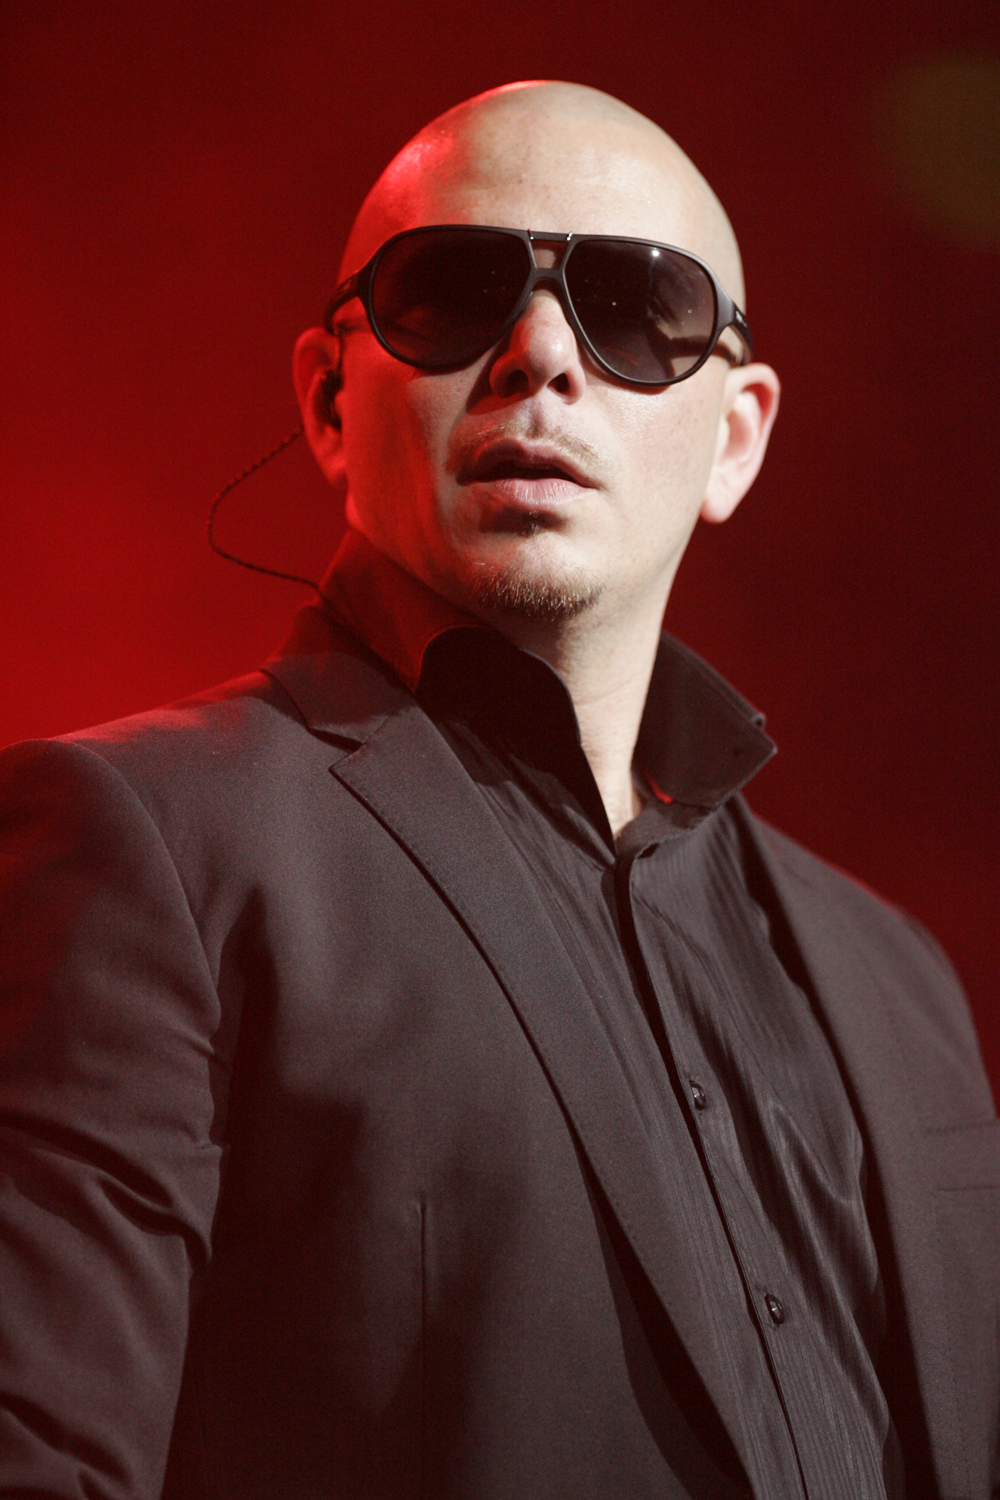 The 39-year old son of father (?) and mother(?) Pitbull in 2020 photo. Pitbull earned a unknown million dollar salary - leaving the net worth at 50 million in 2020